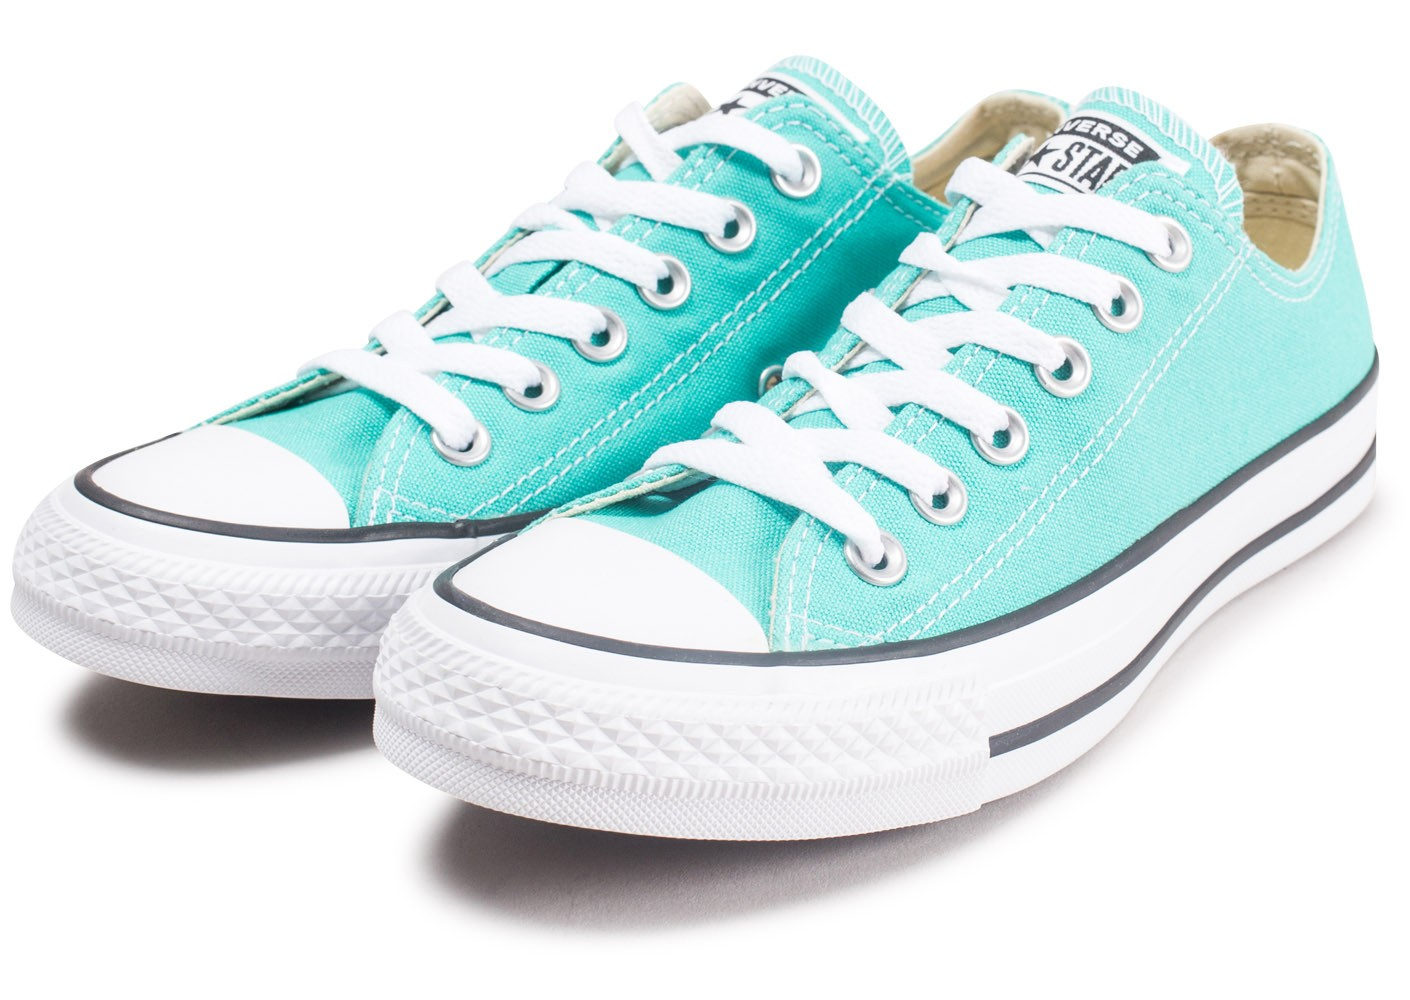 Converse Chuck Taylor All Star Low bleu turquoise